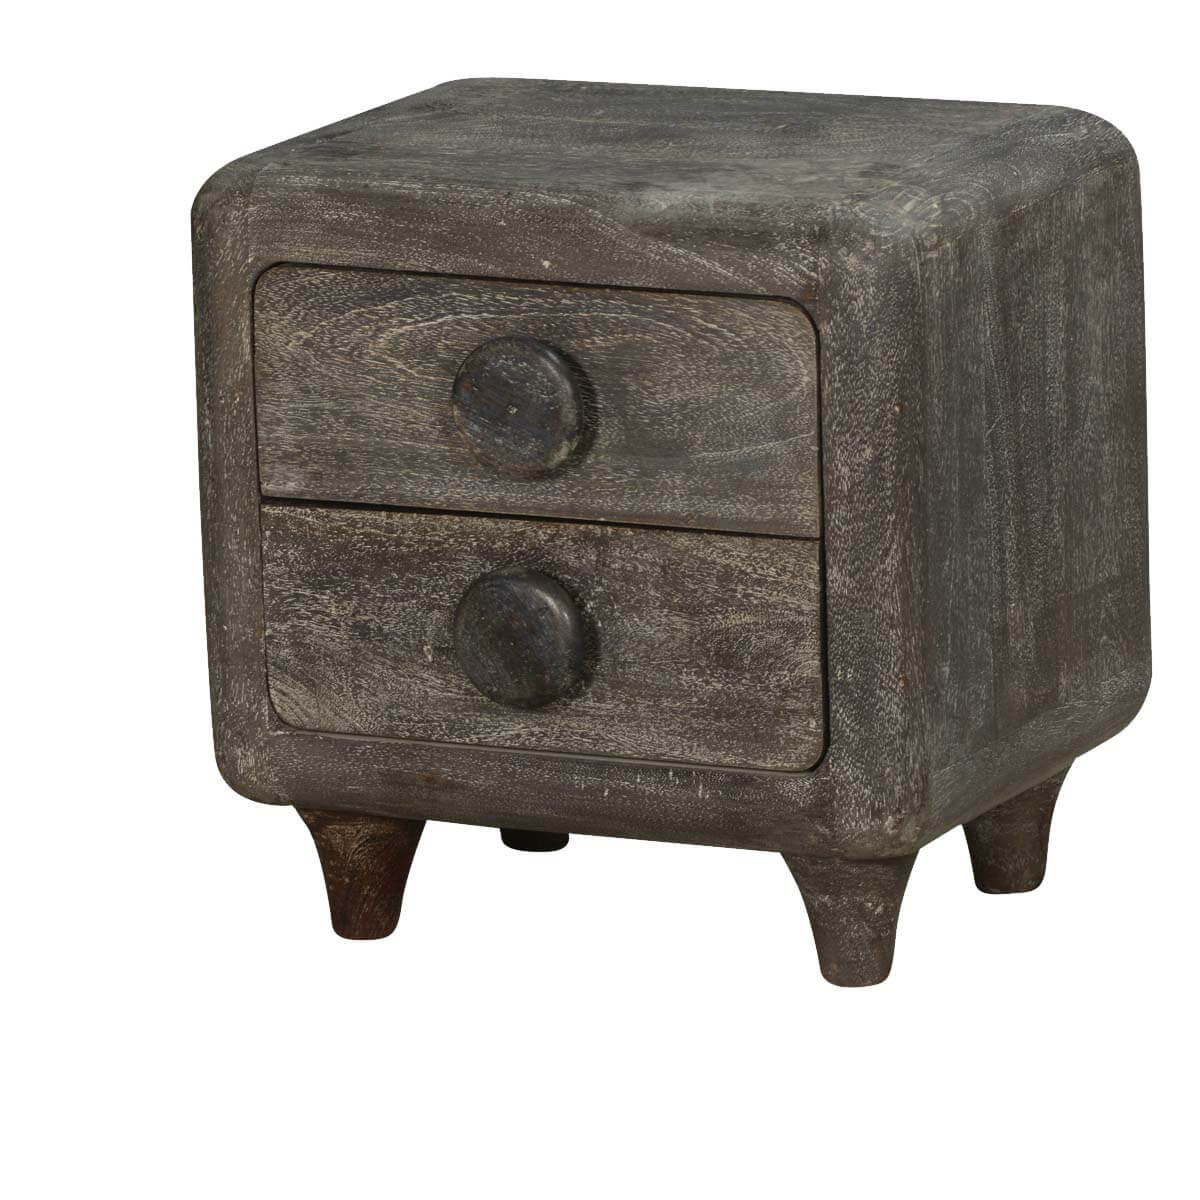 60's Smokey Mango Wood 2 Drawer End Table Chest